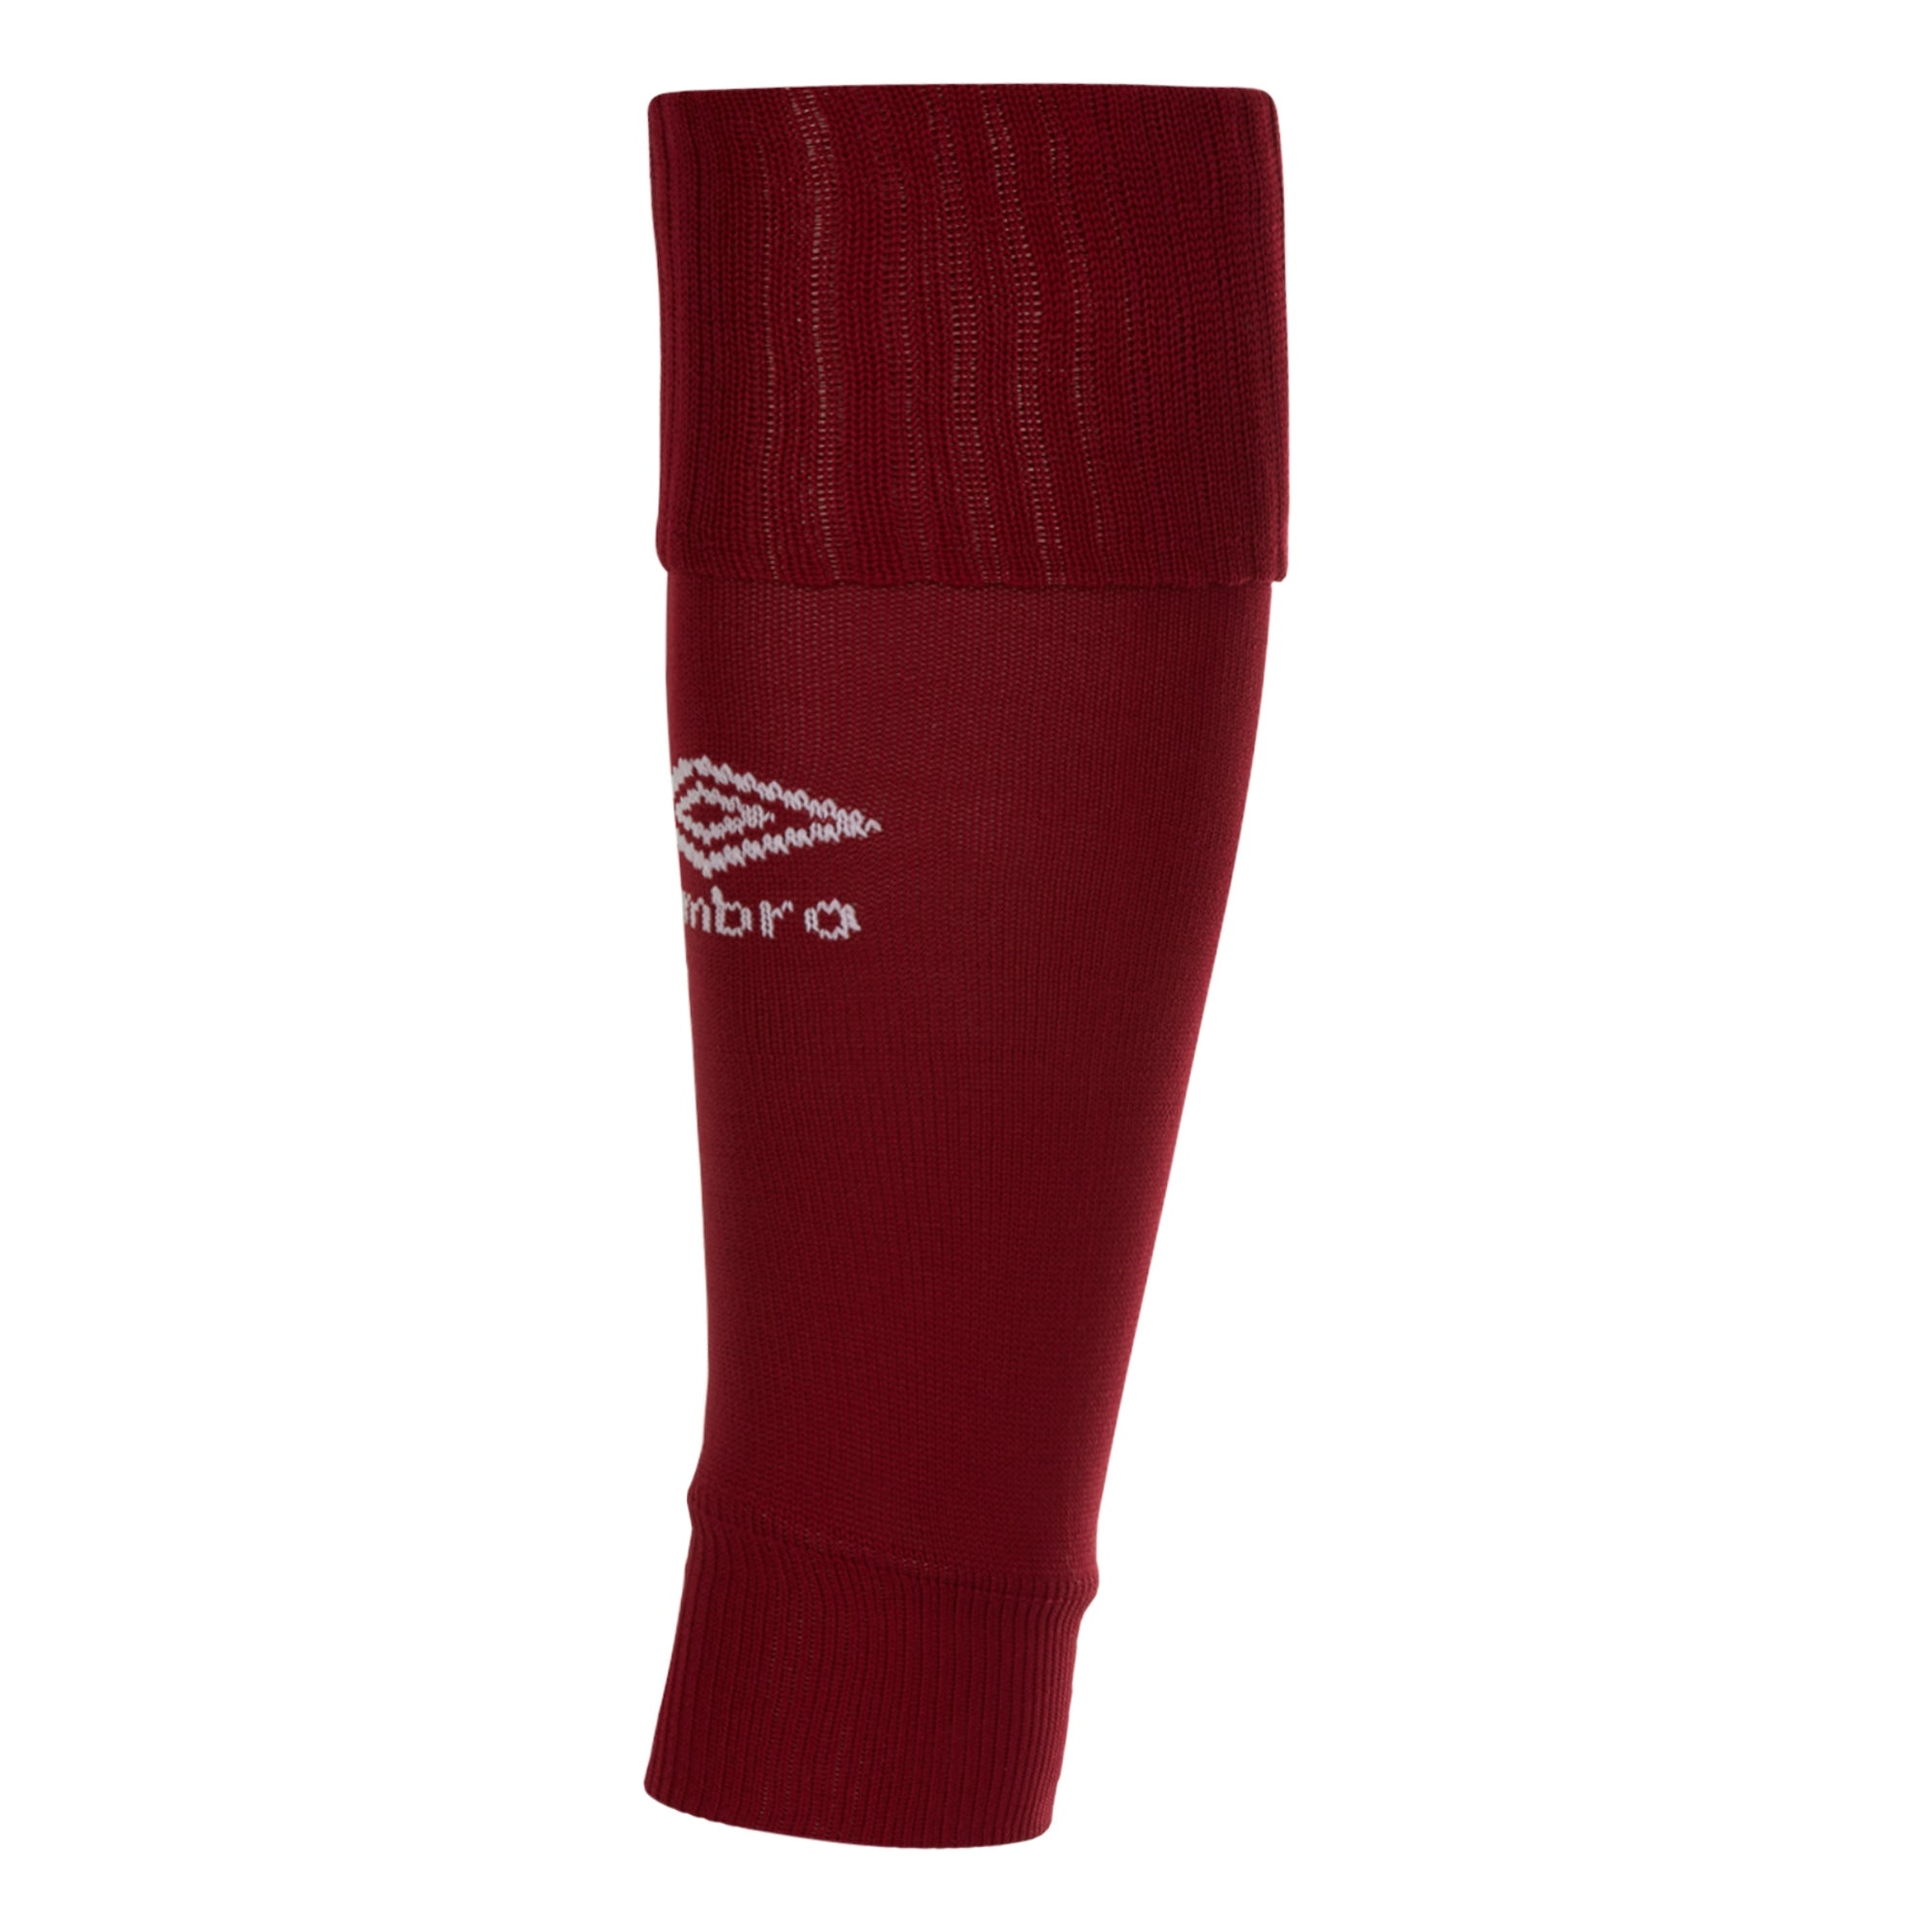 Umbro Sock Leg - New Claret